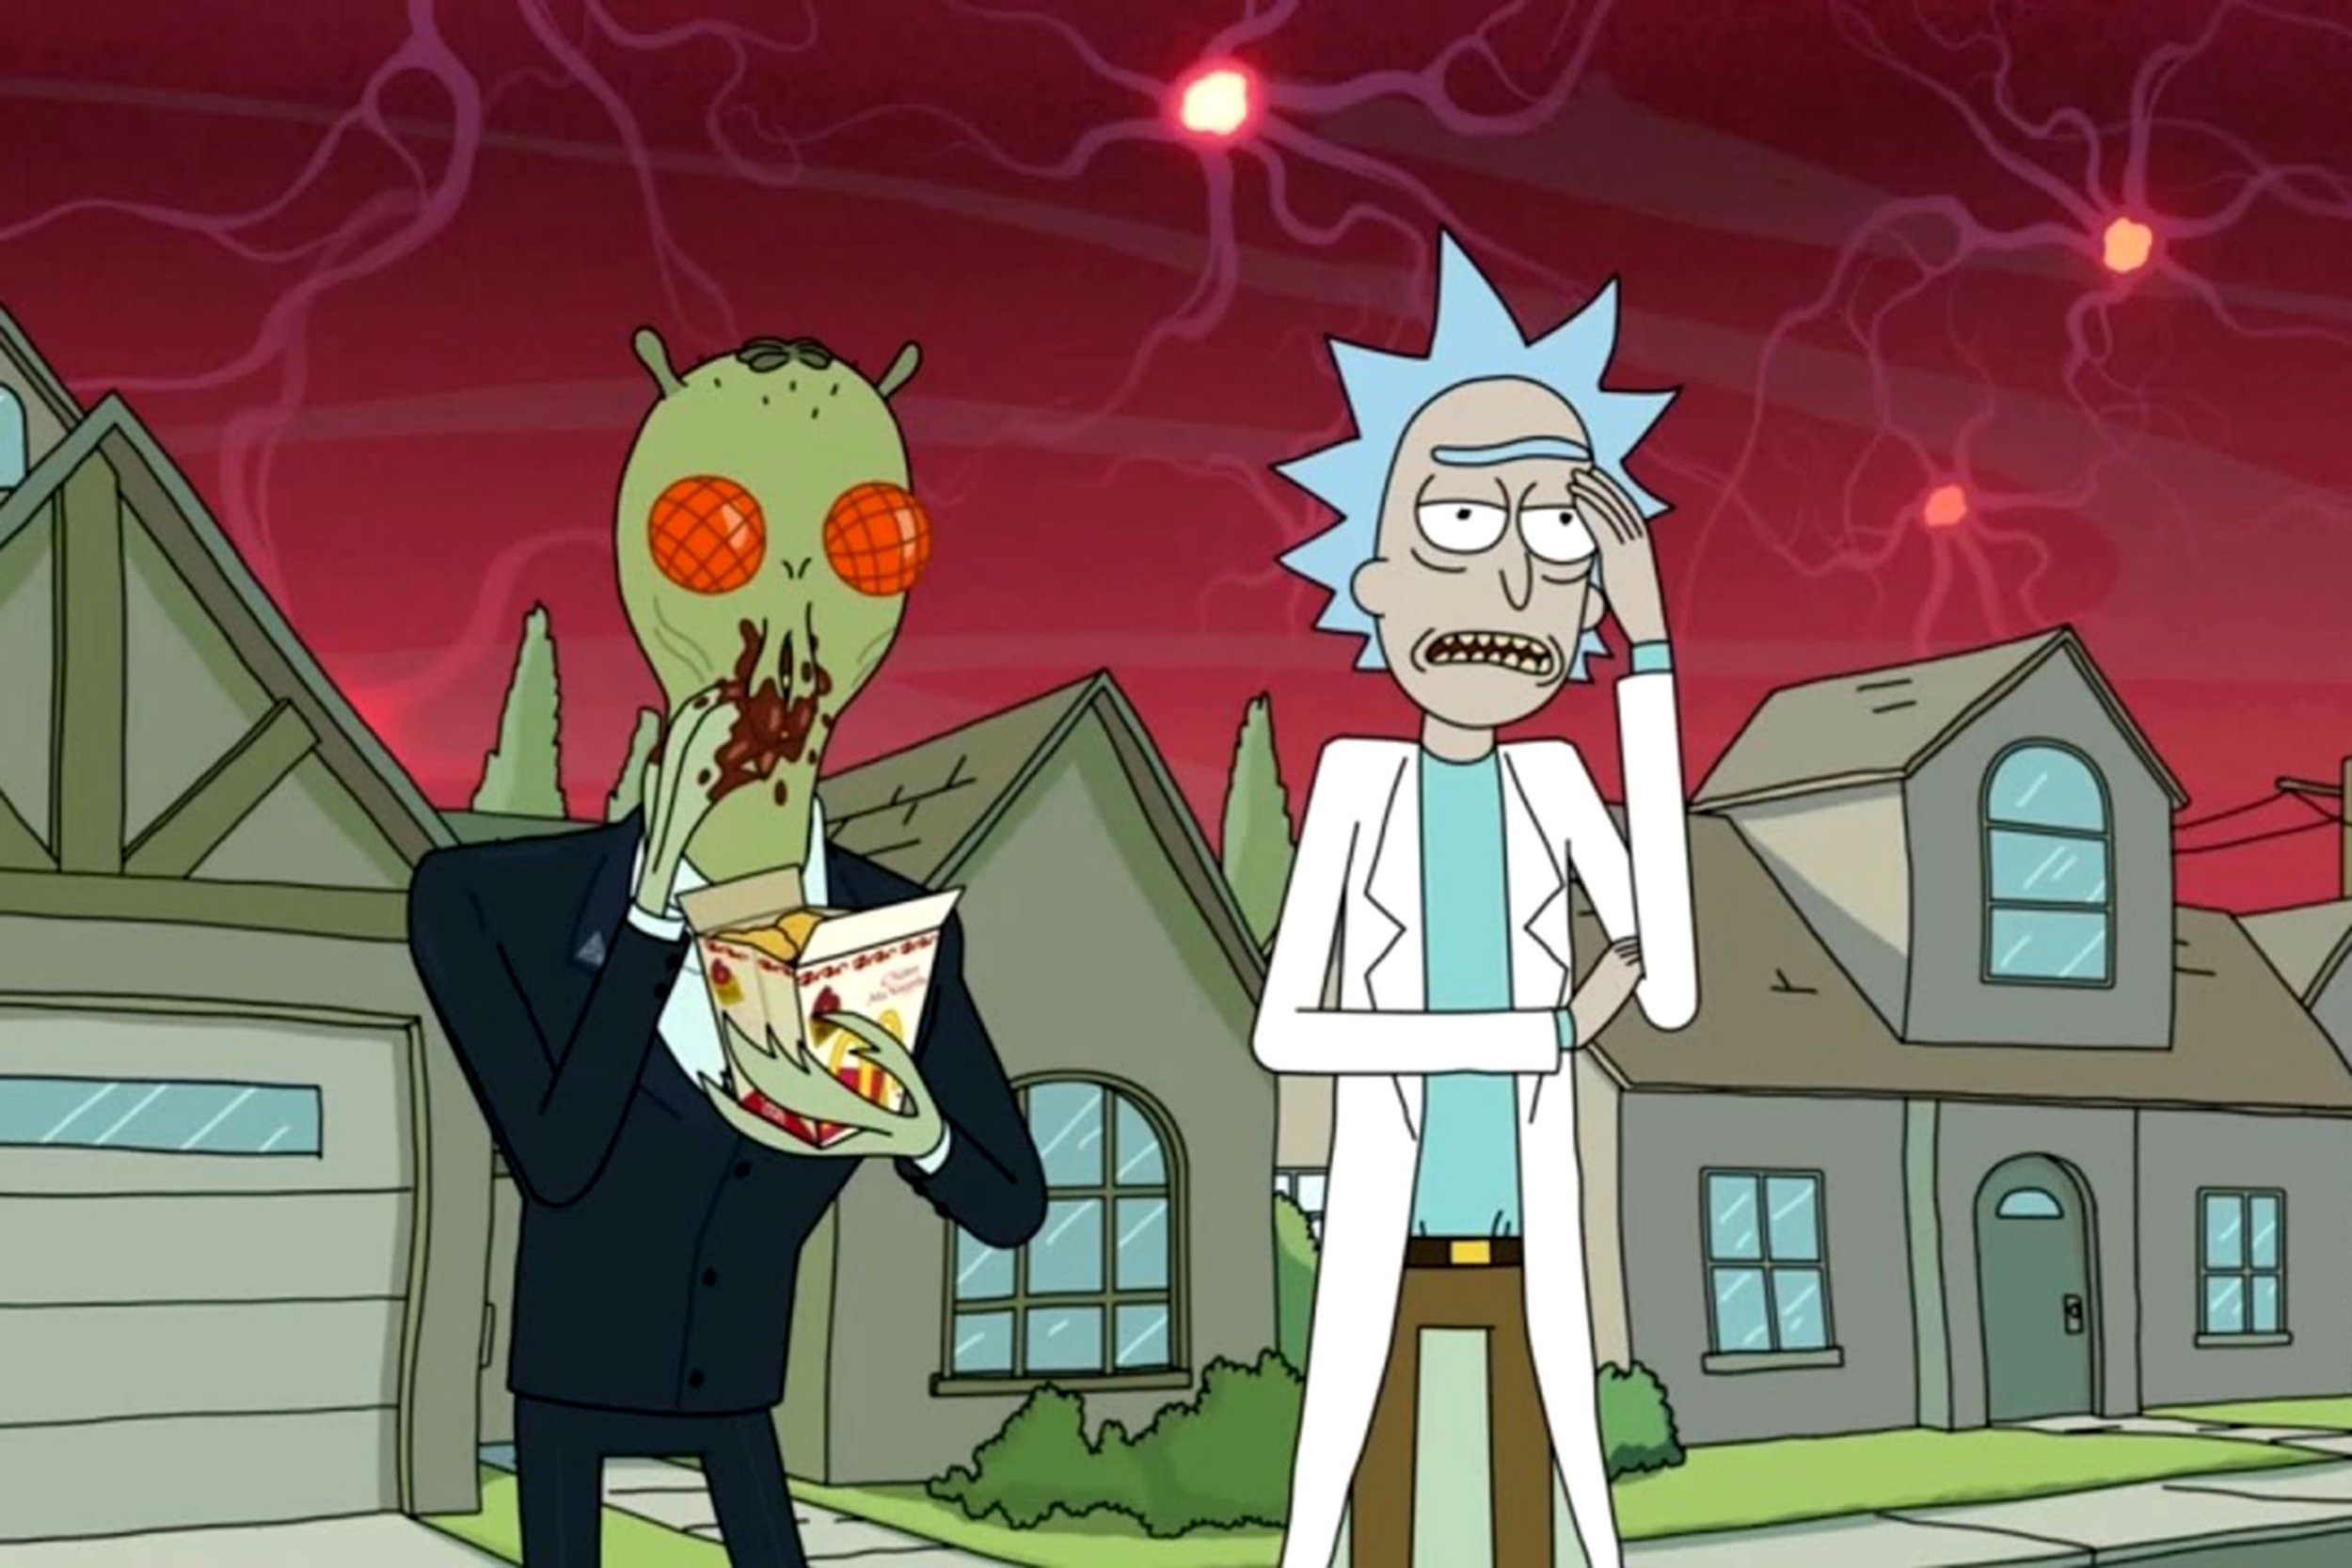 Hopefully Rick And Morty season 4 meeting photo won't be a sign of things to come